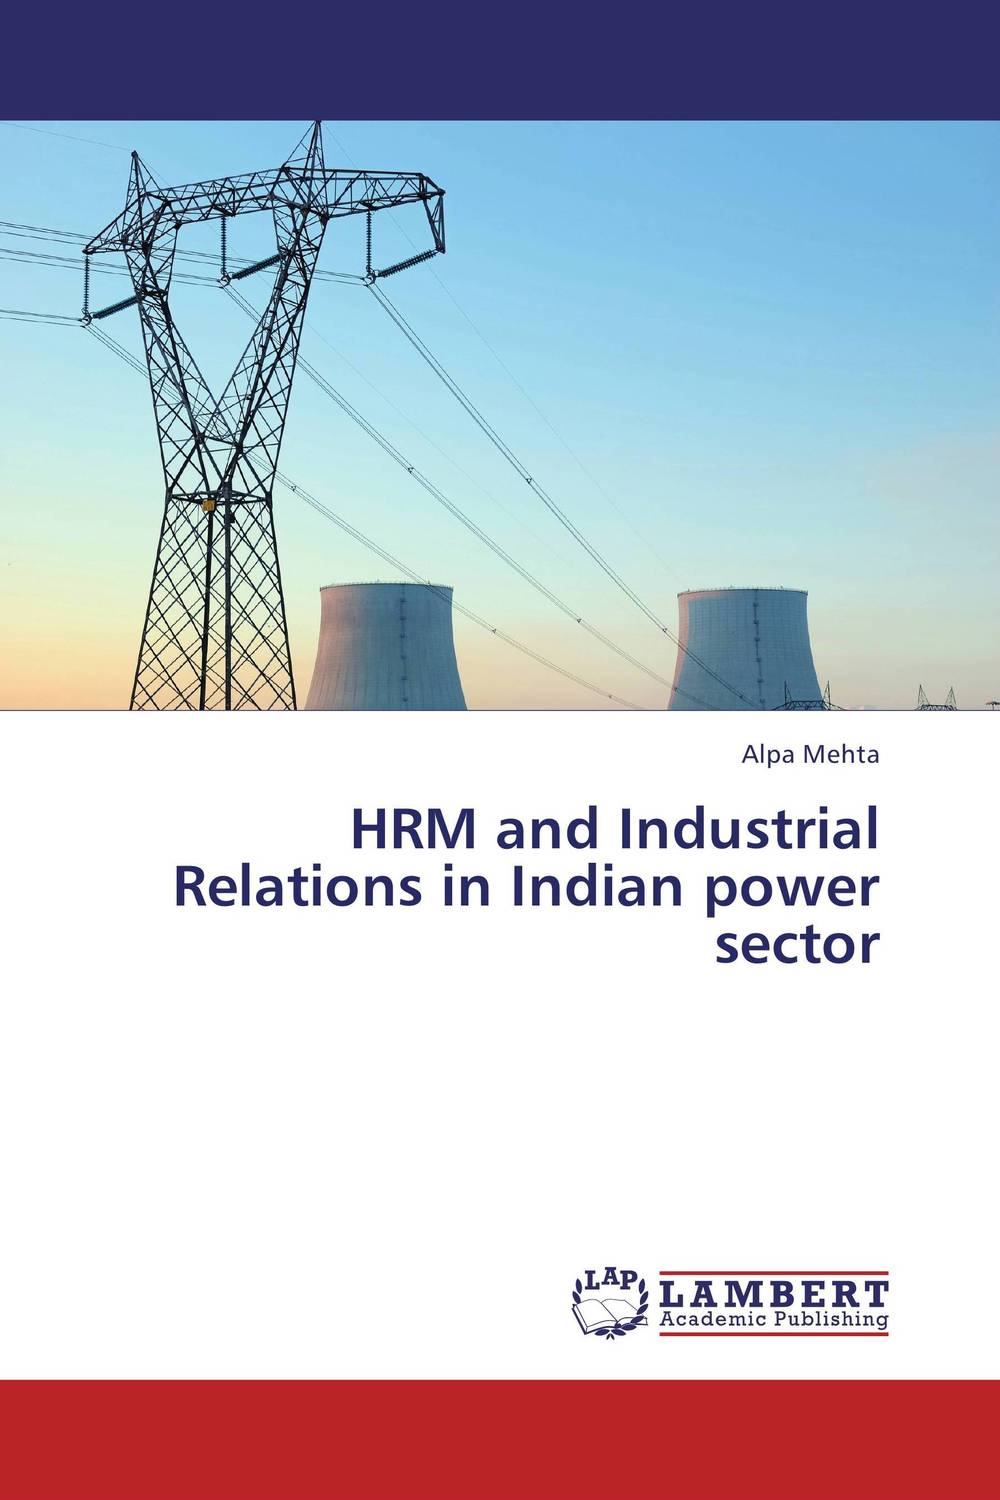 HRM and Industrial Relations in Indian power sector